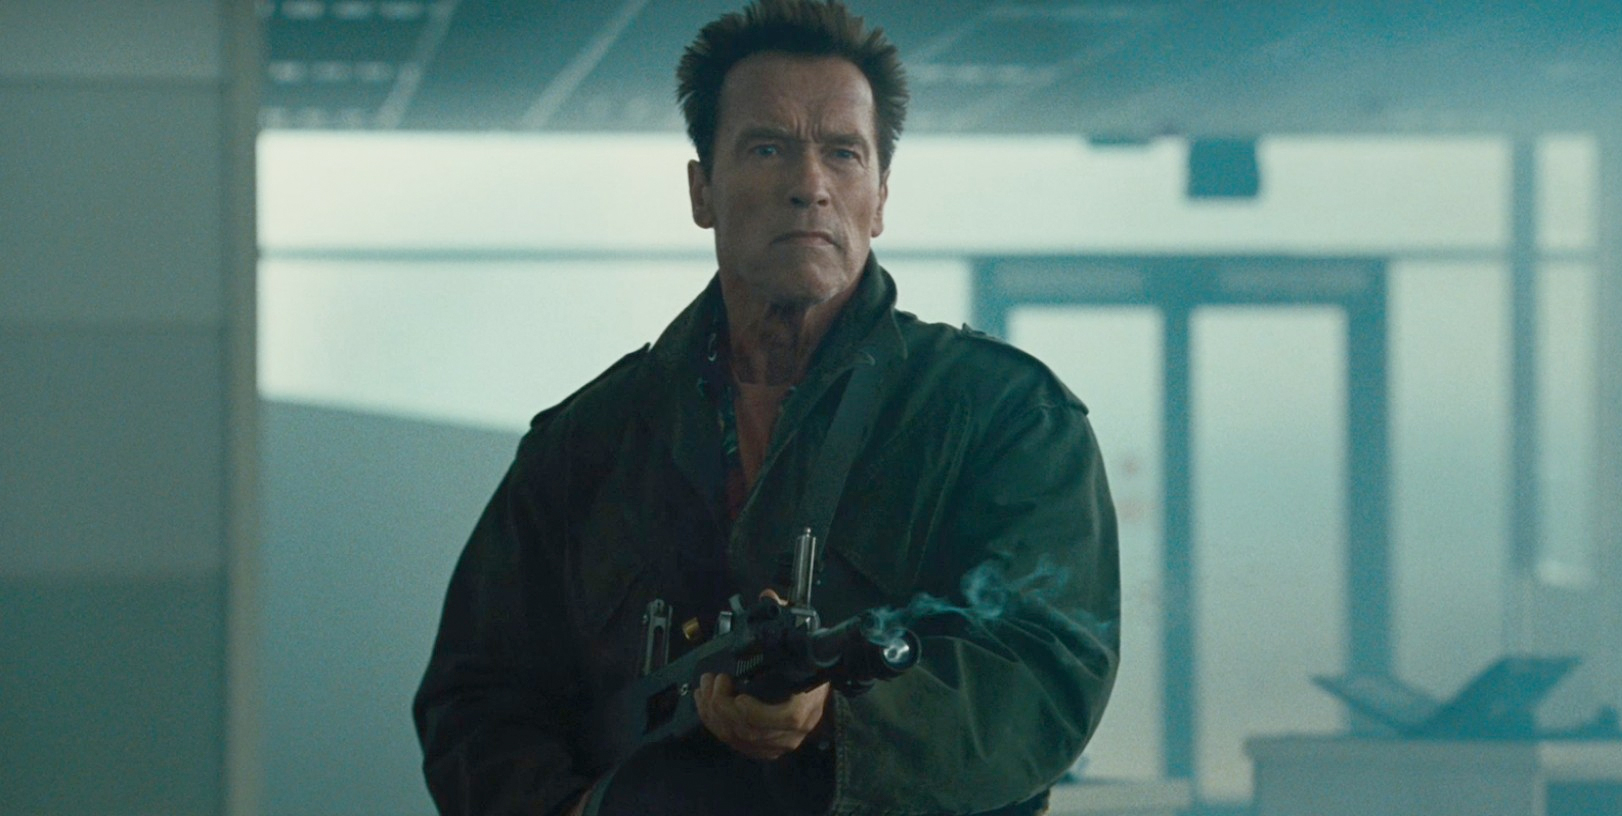 Arnold Schwarzenegger Joins Michael Fassbender in the 'Kung Fury' Movie